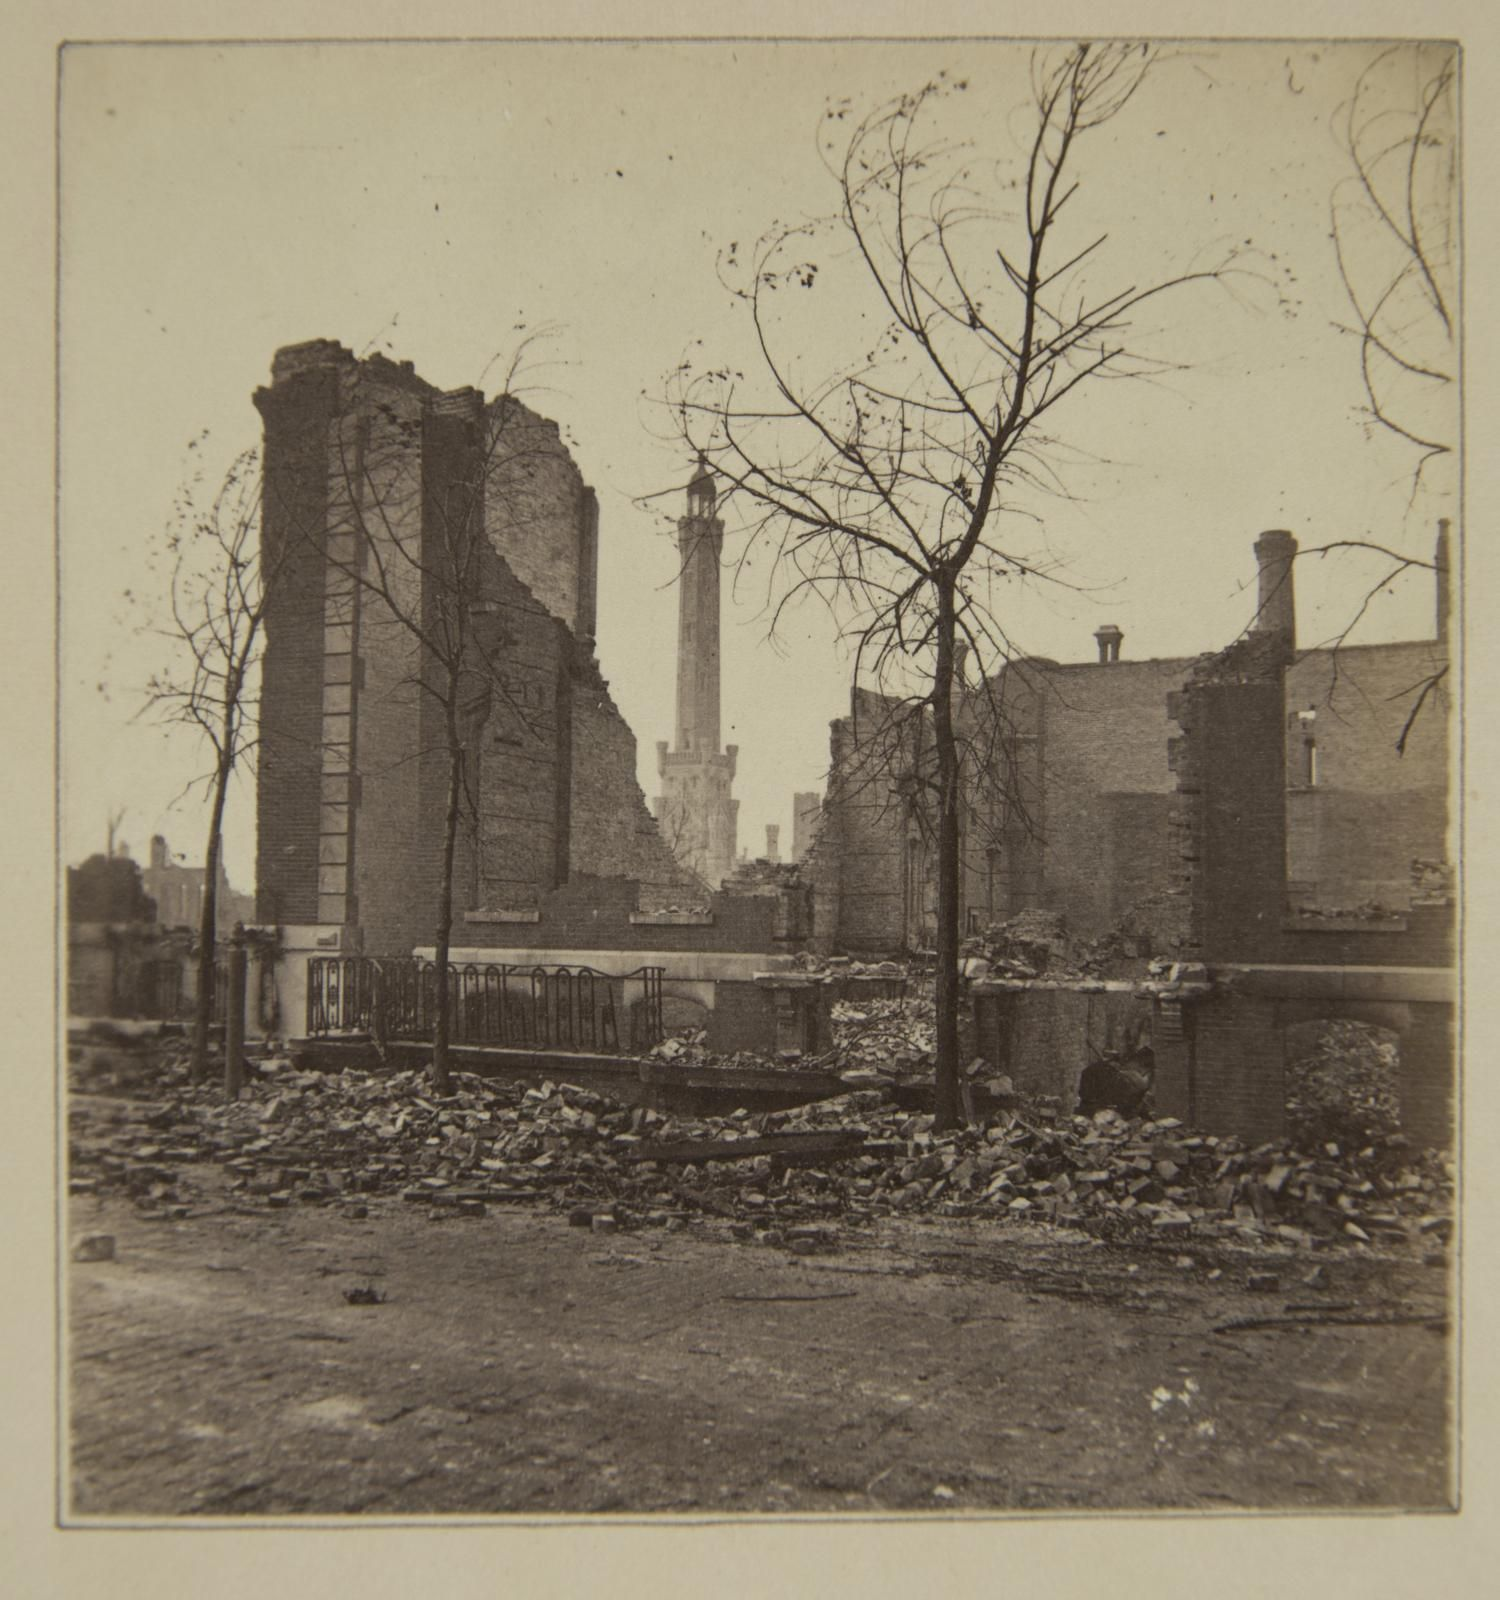 Chicago Fire Of 1871 Ruins About Water Works Chicago Fire